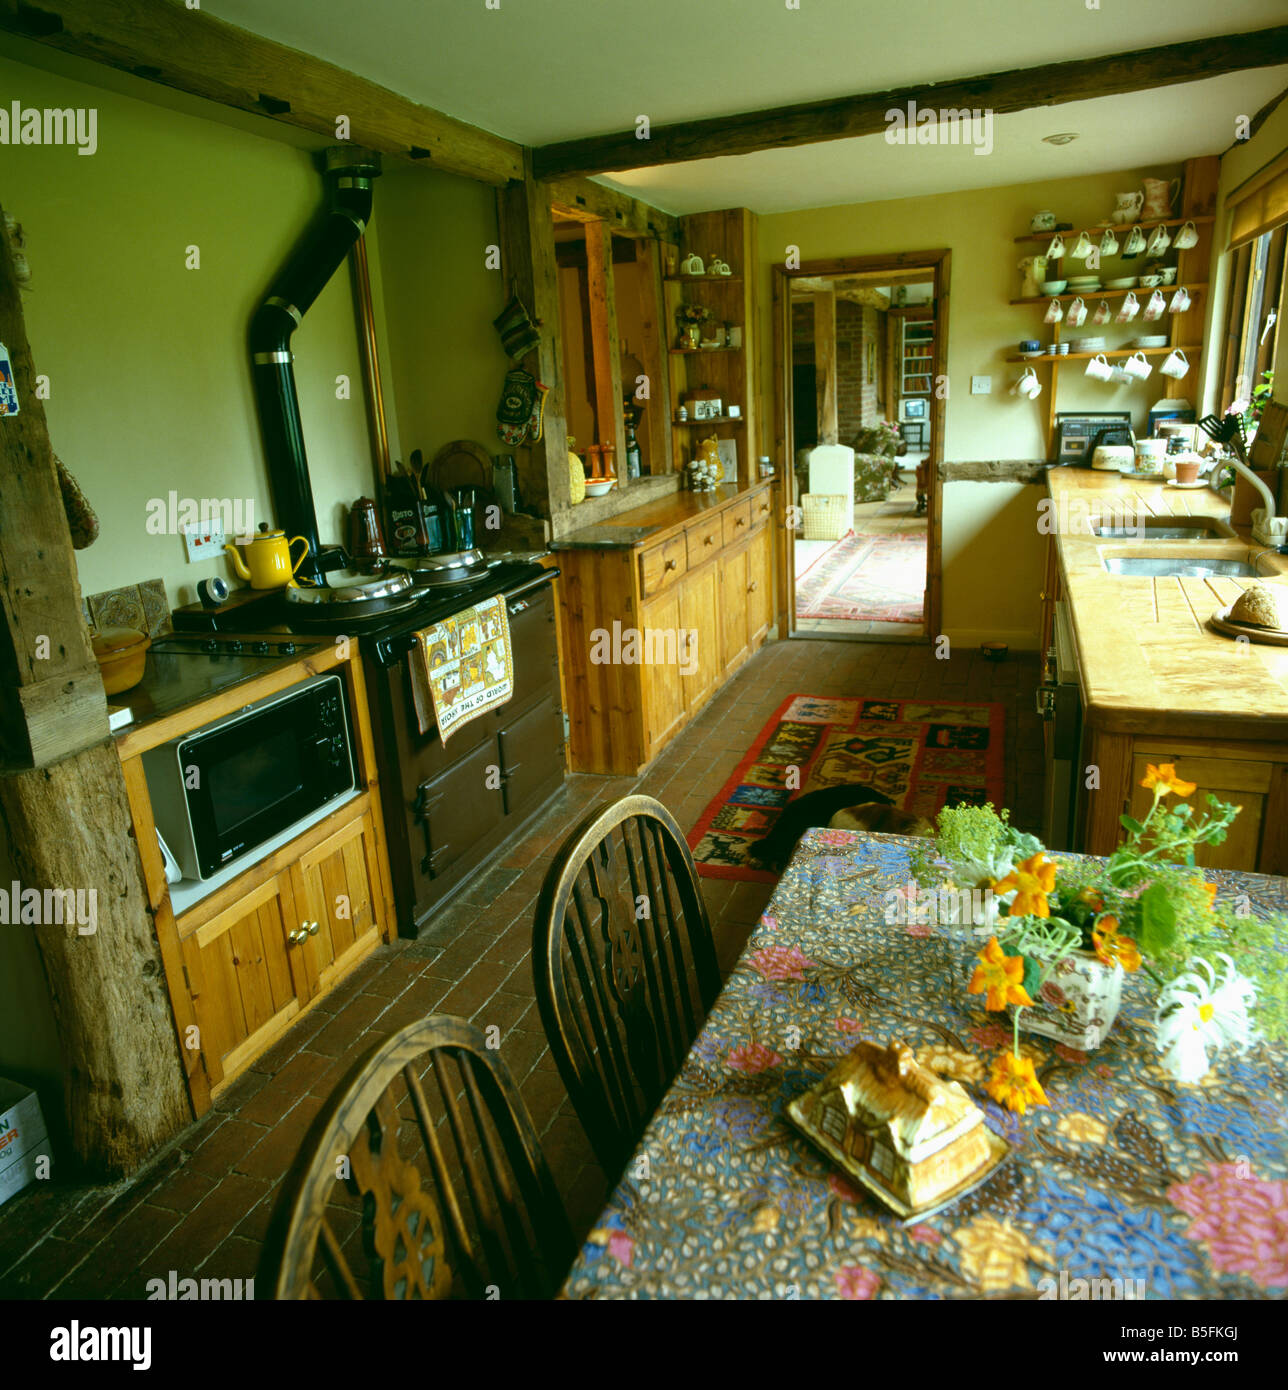 Old Country Kitchen: Rayburn Oven In Old-fashioned Country Kitchen With Floral